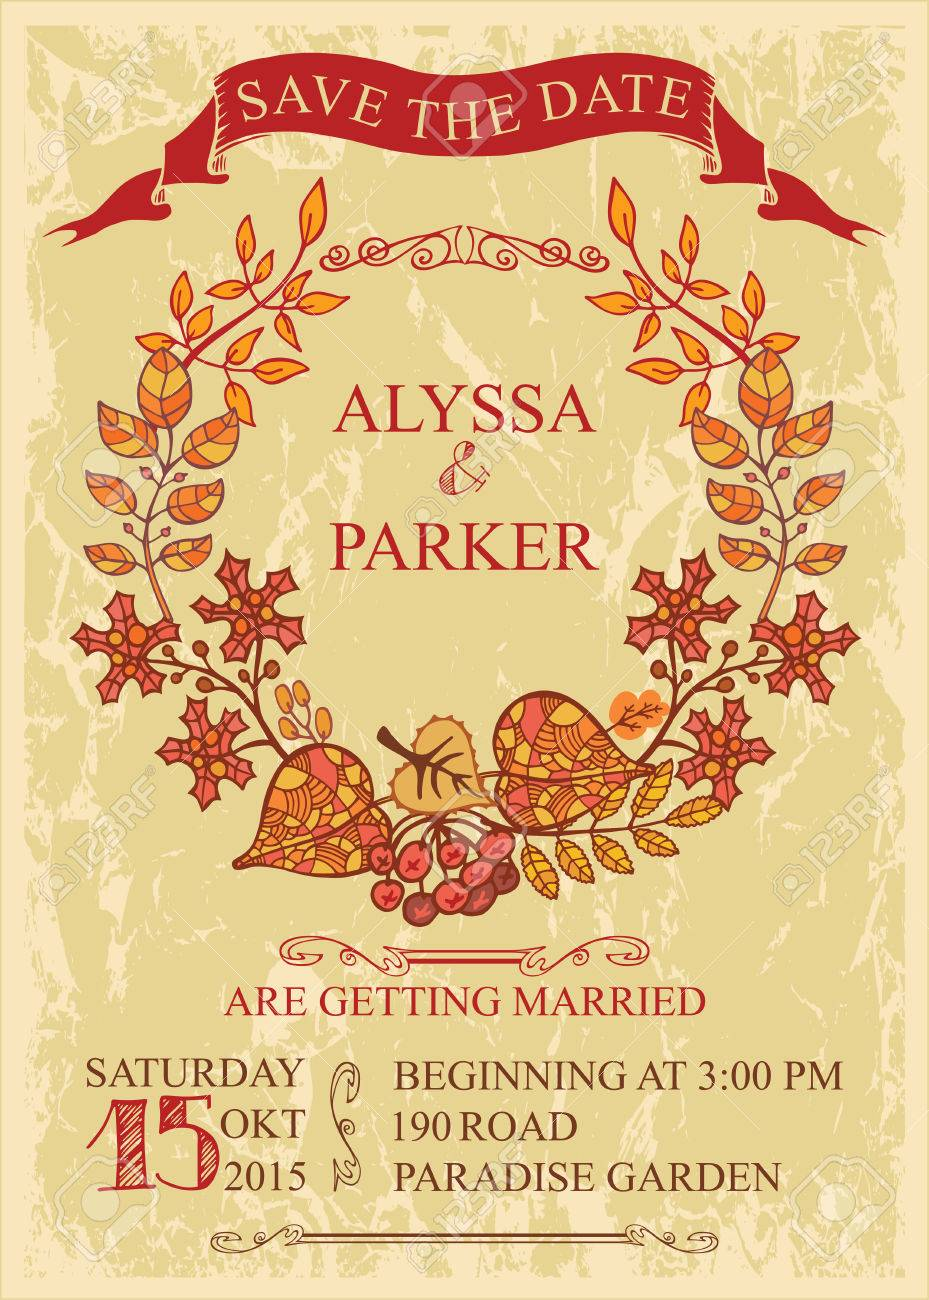 retro wedding save the date card with autumn leaves vector design